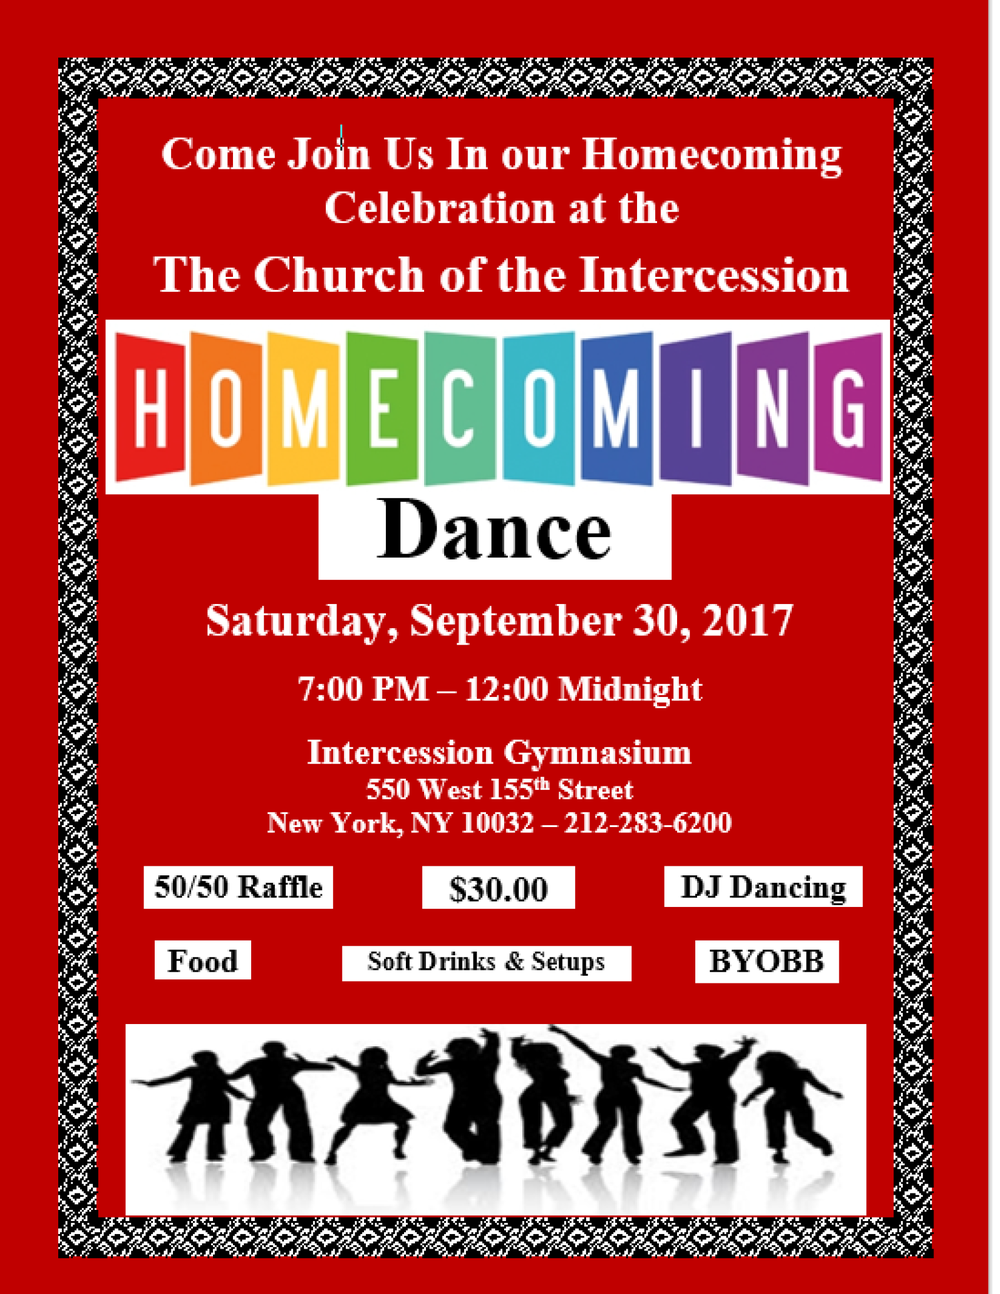 Homecoming Dance Flyer.png